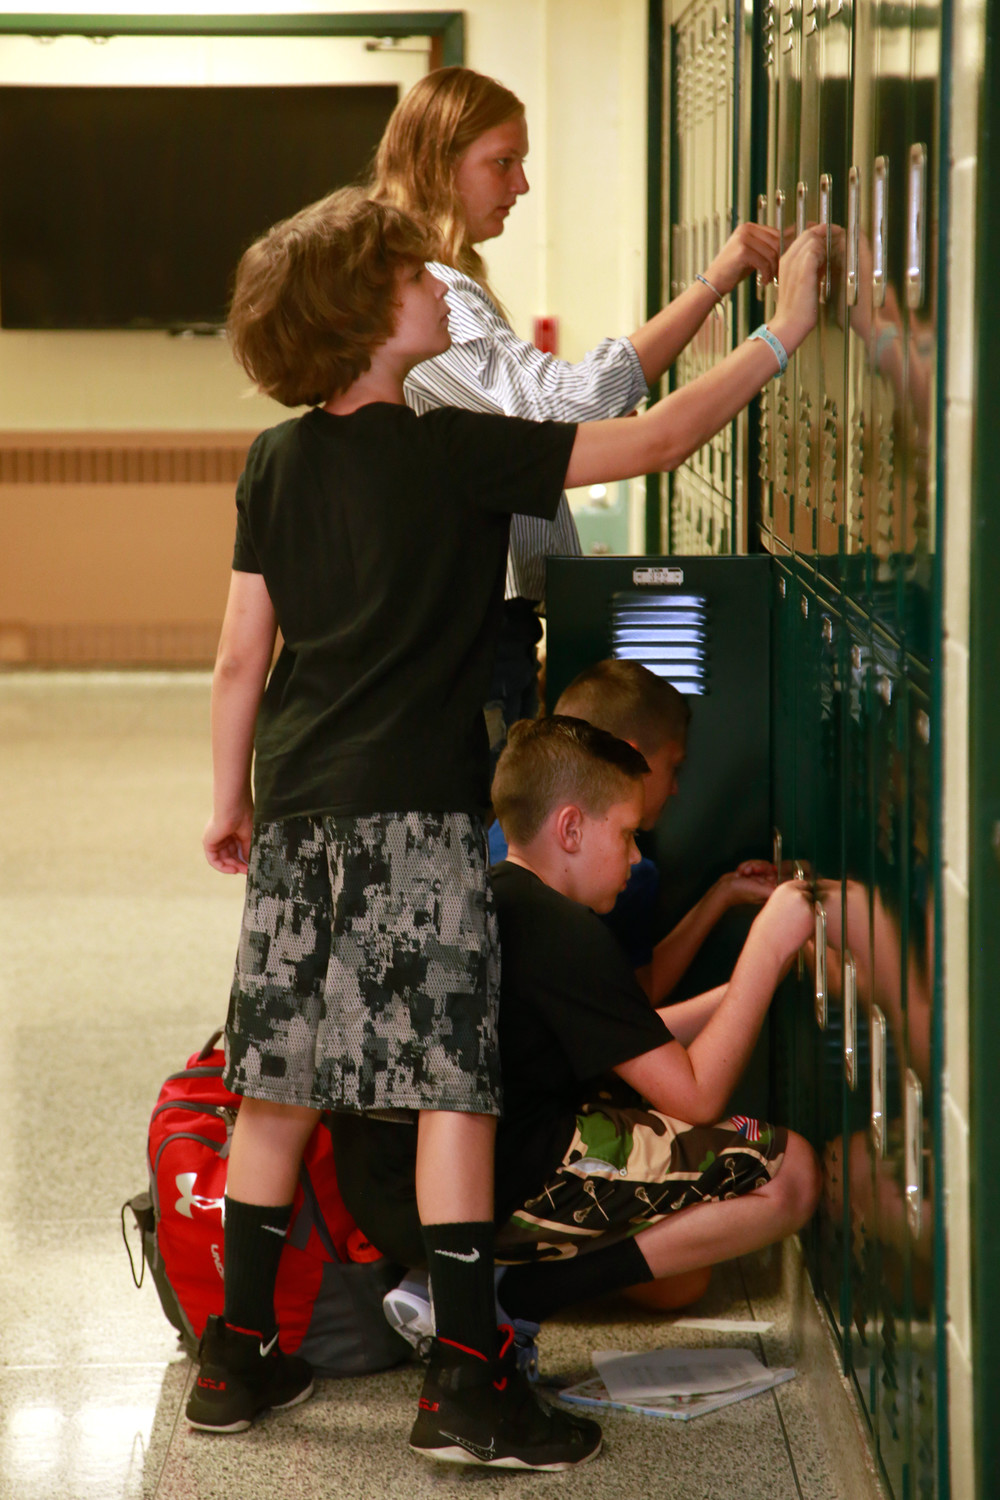 Alex Kopper, Chris Lamoreaux, Ryan Kehoe and Stephanie Neri tried out their new lockers at Lynbrook North Middle School.